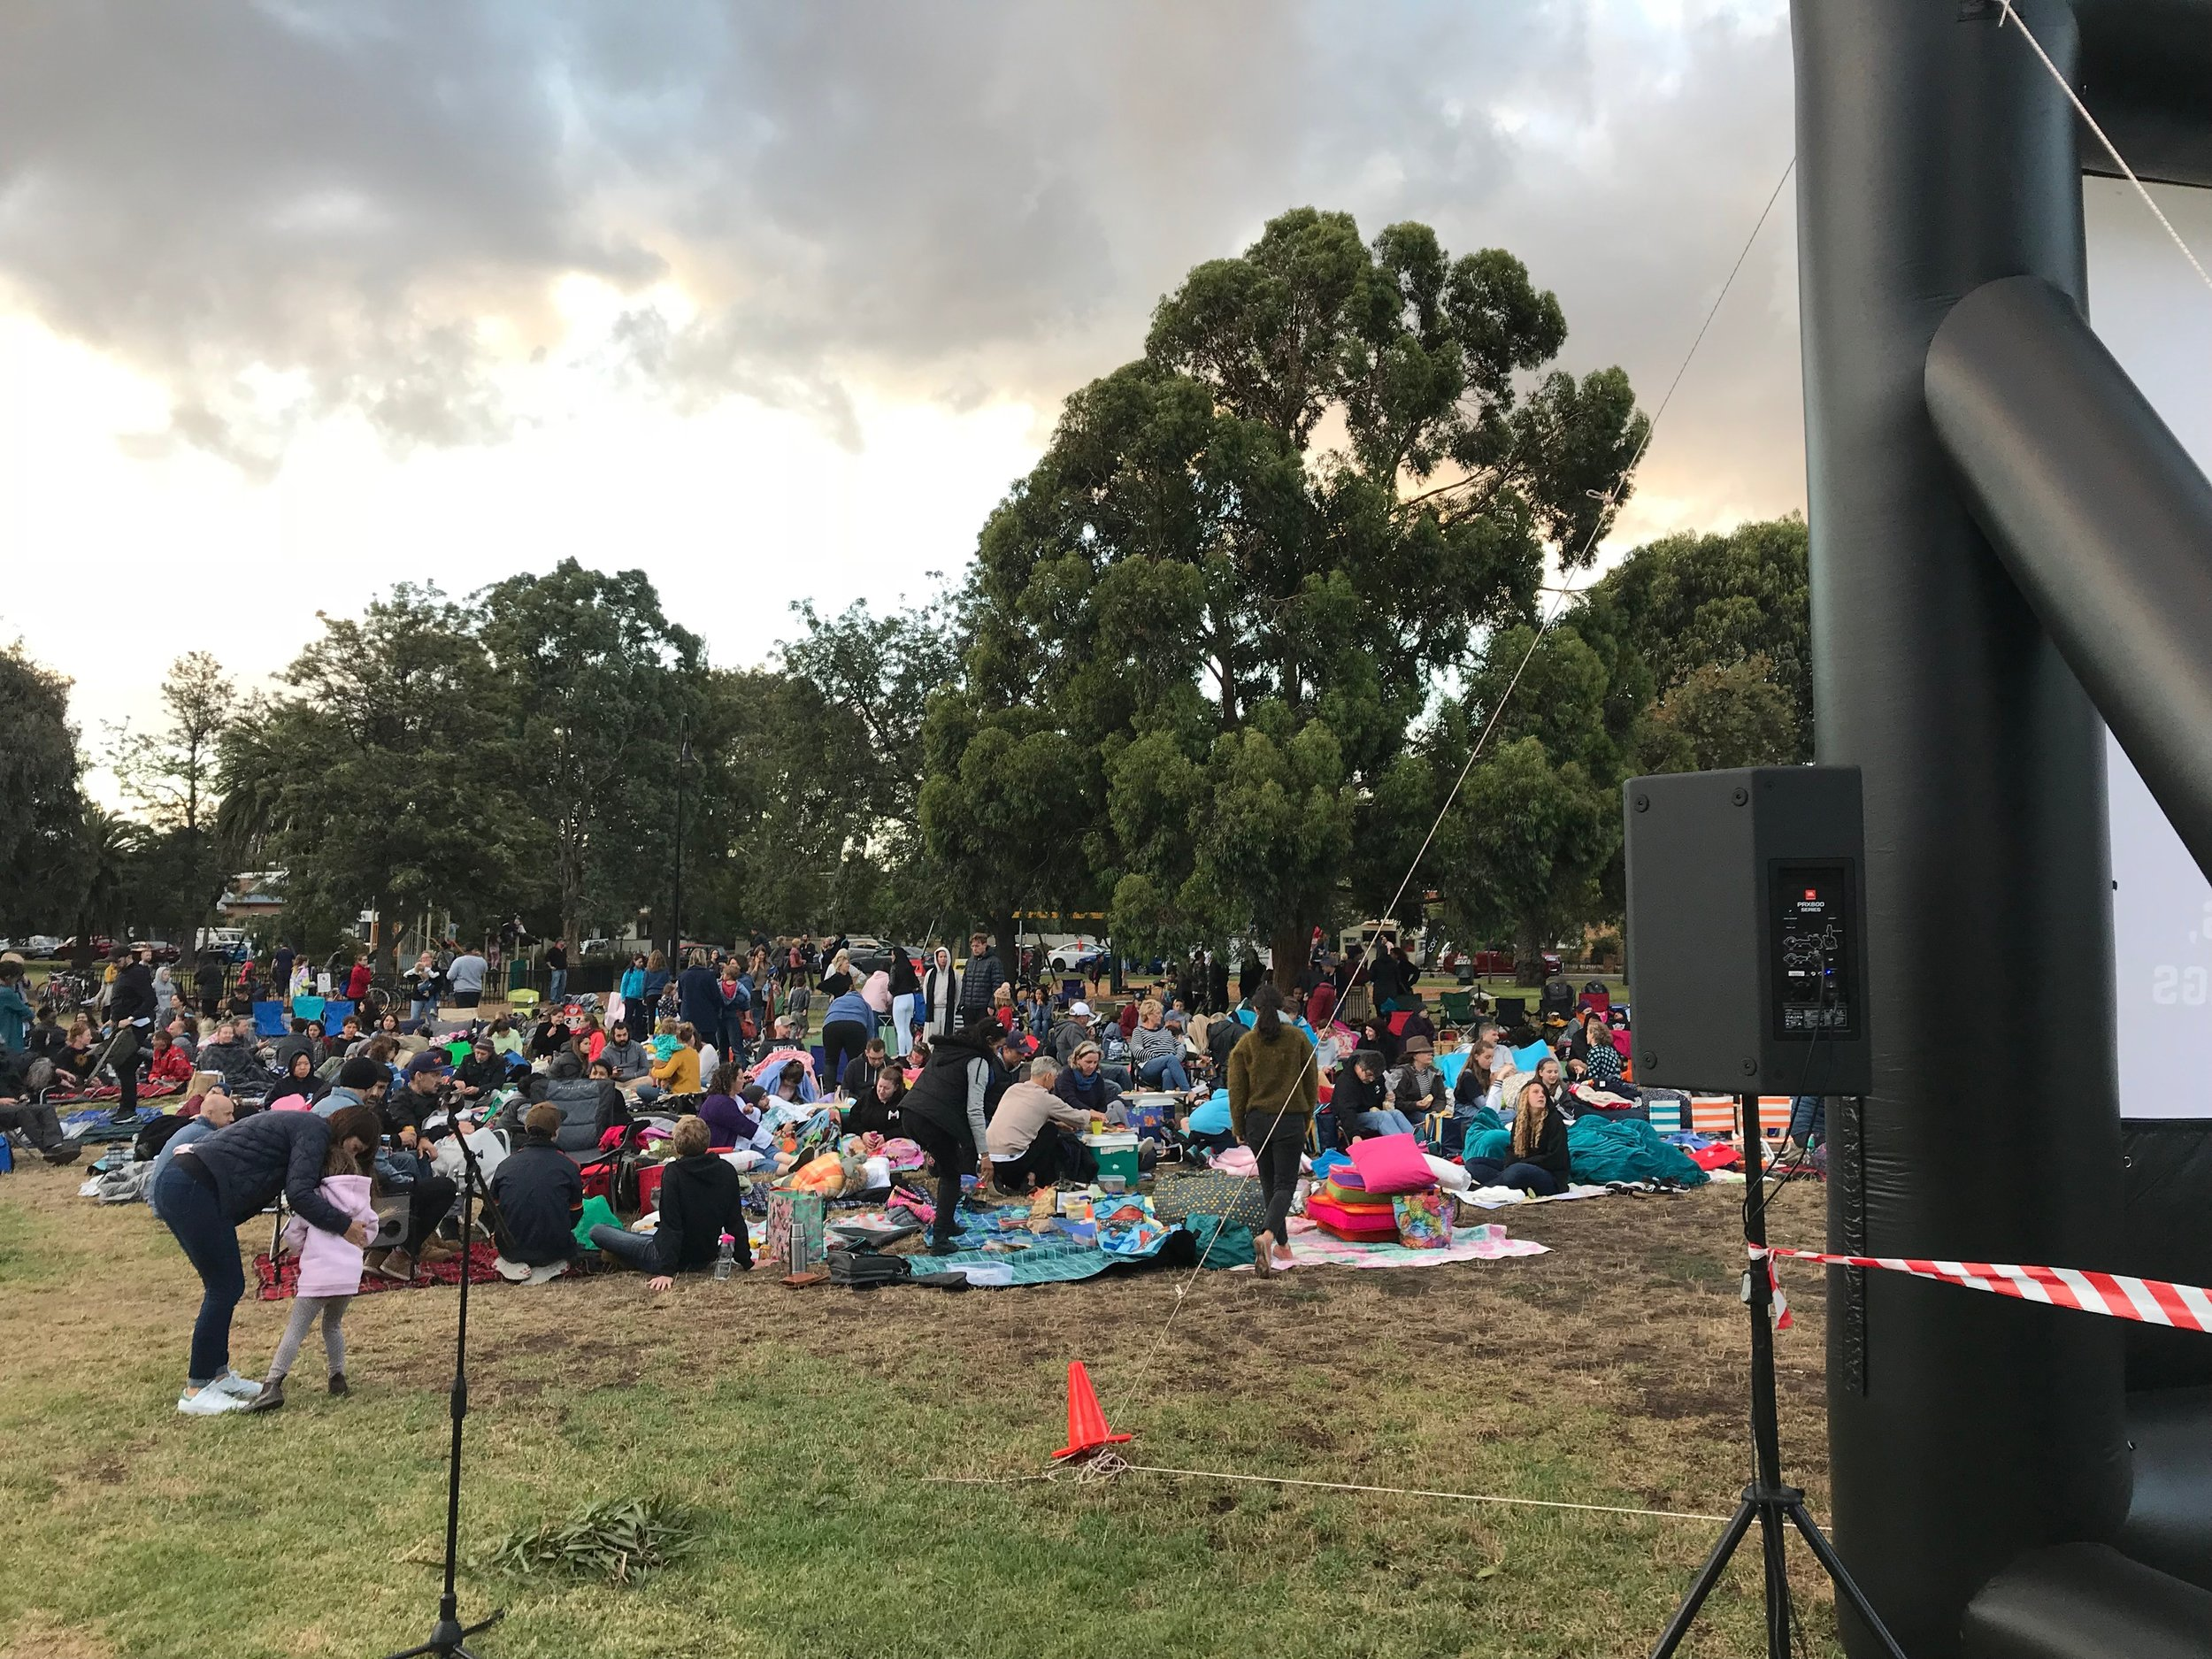 Free, community screenings in parks - Every years we put on over a hundred outdoor movies events and many of these are for the generous Melbourne city councils (such as Darebin, Moreland, Maribynong) who put on free movies for their community. This one was in Penders Park for Darebin council last summer. We can provide everything including power if need be.